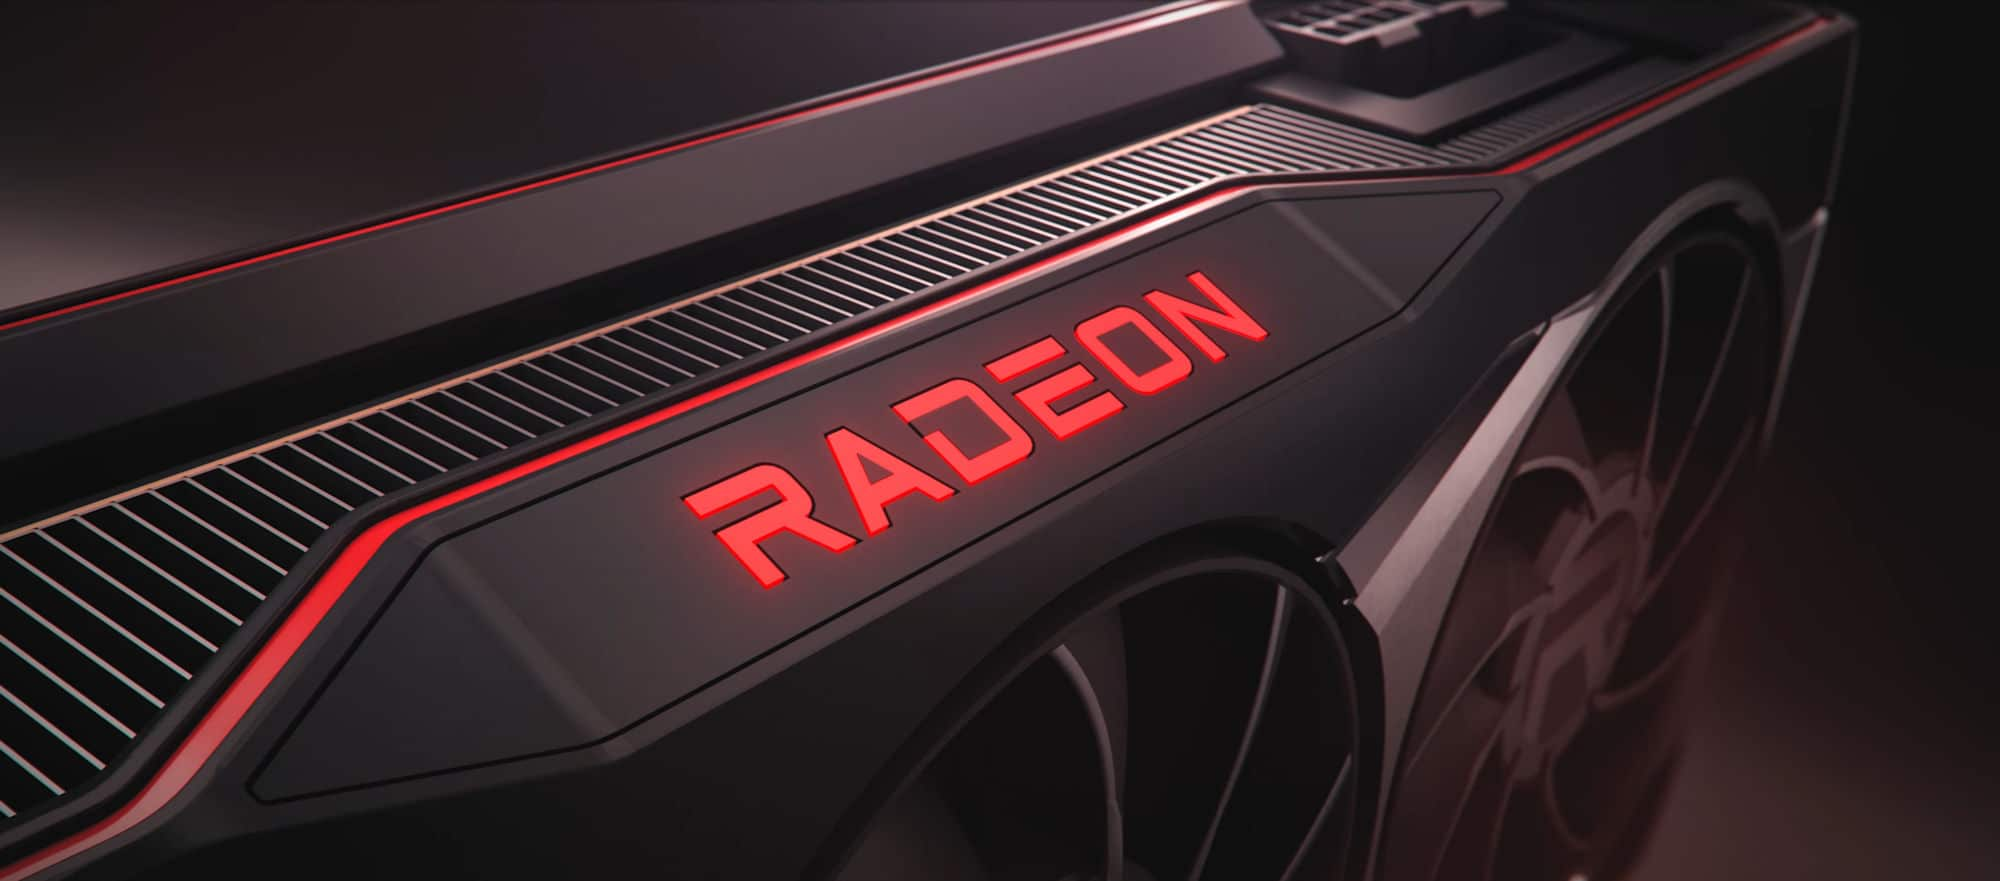 AMD Radeon RX6000 SERIES